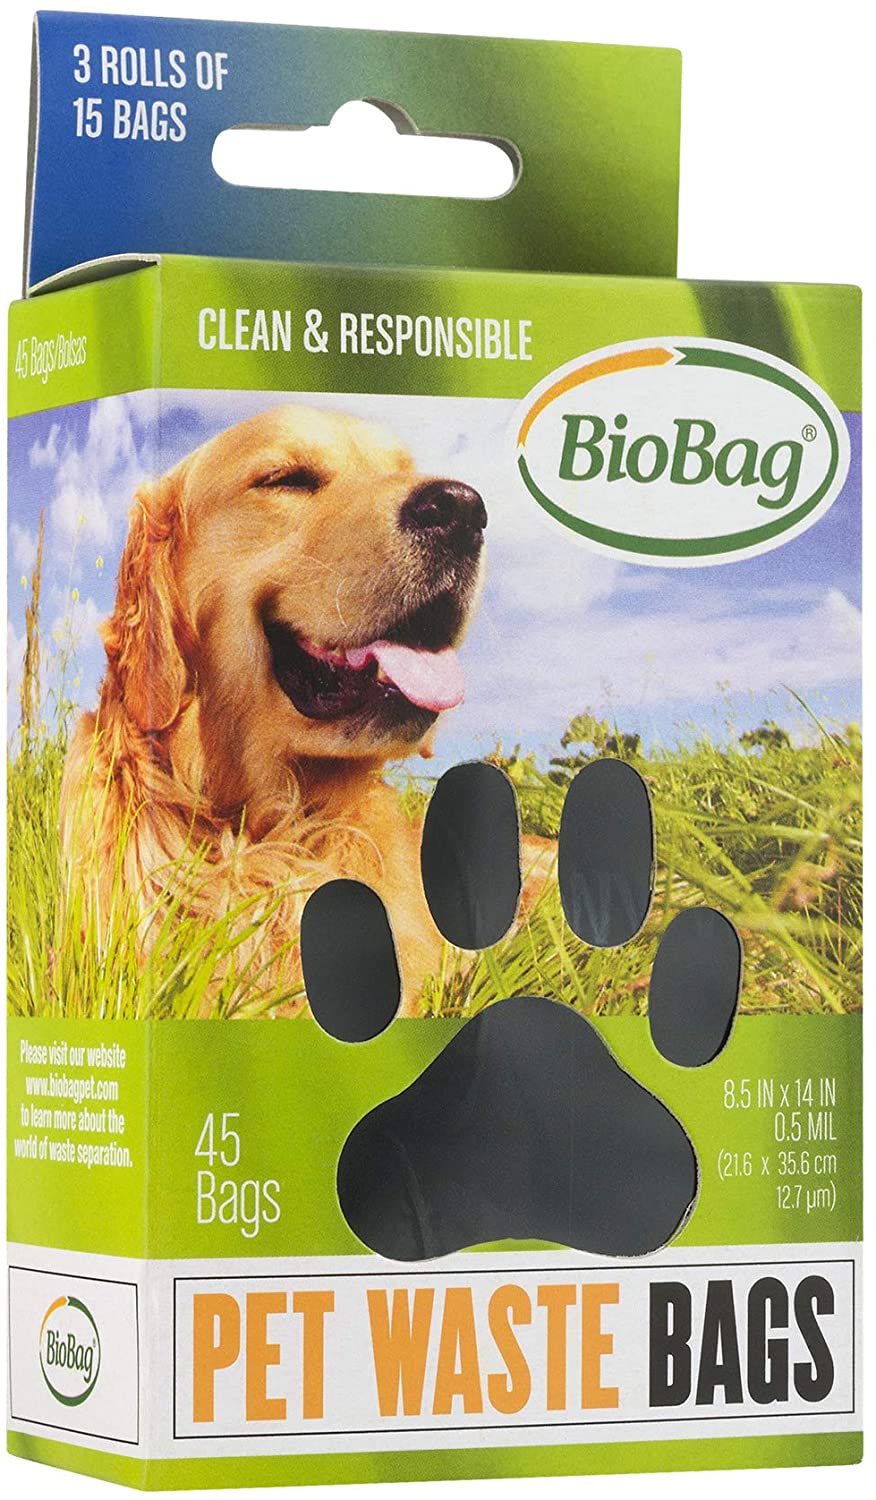 "8.5"" X 14"" X 0.5 Mil Black Certified Compostable Plastic Pet Waste Bags (540 Bags Packed 15 Bags/Roll, 3 Rolls/Box, 12 Boxes/Case)"